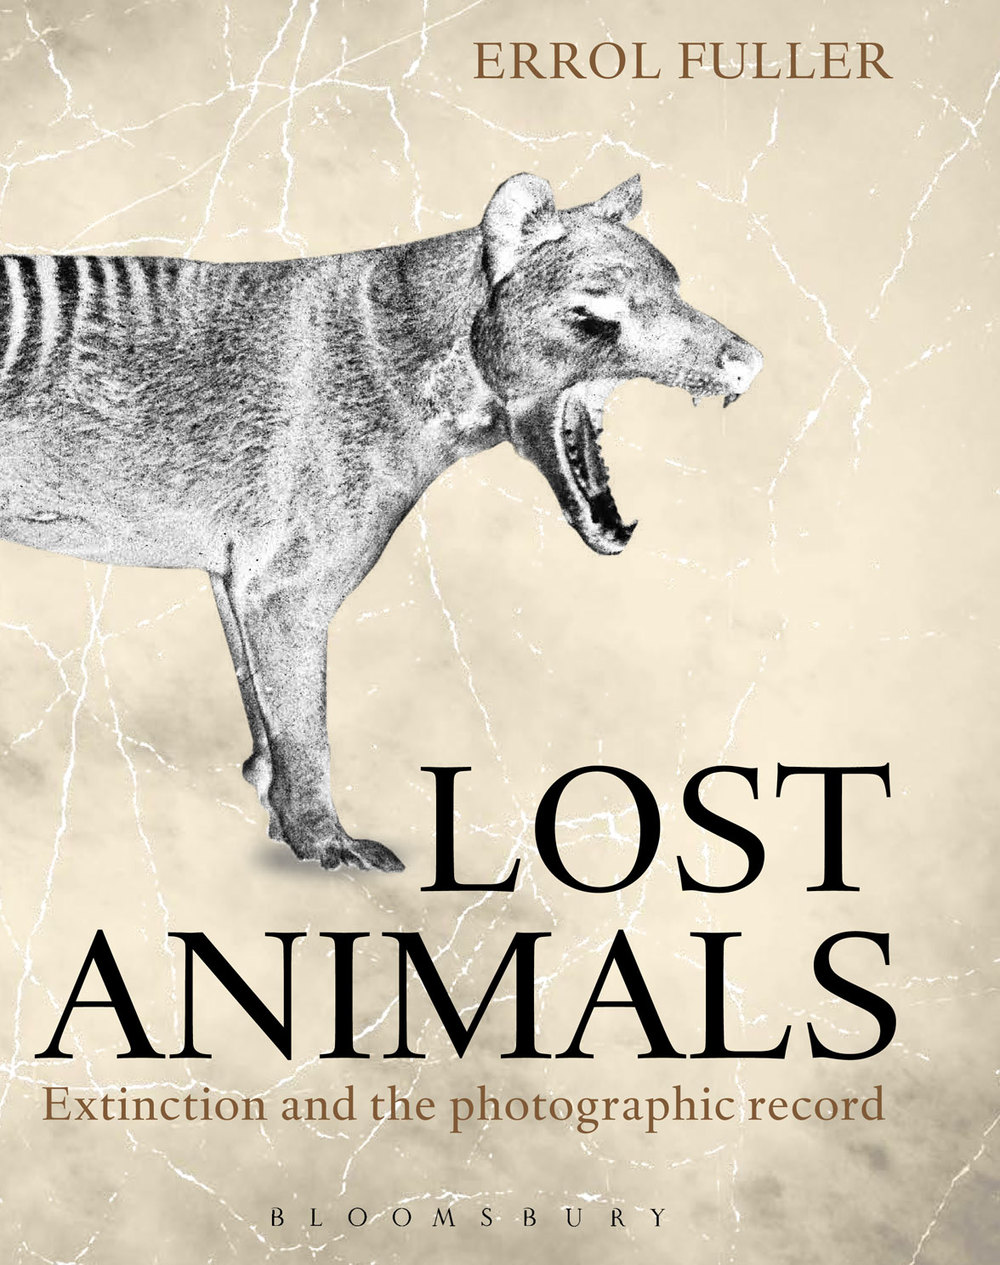 LOST-ANIMALs-cover.jpg